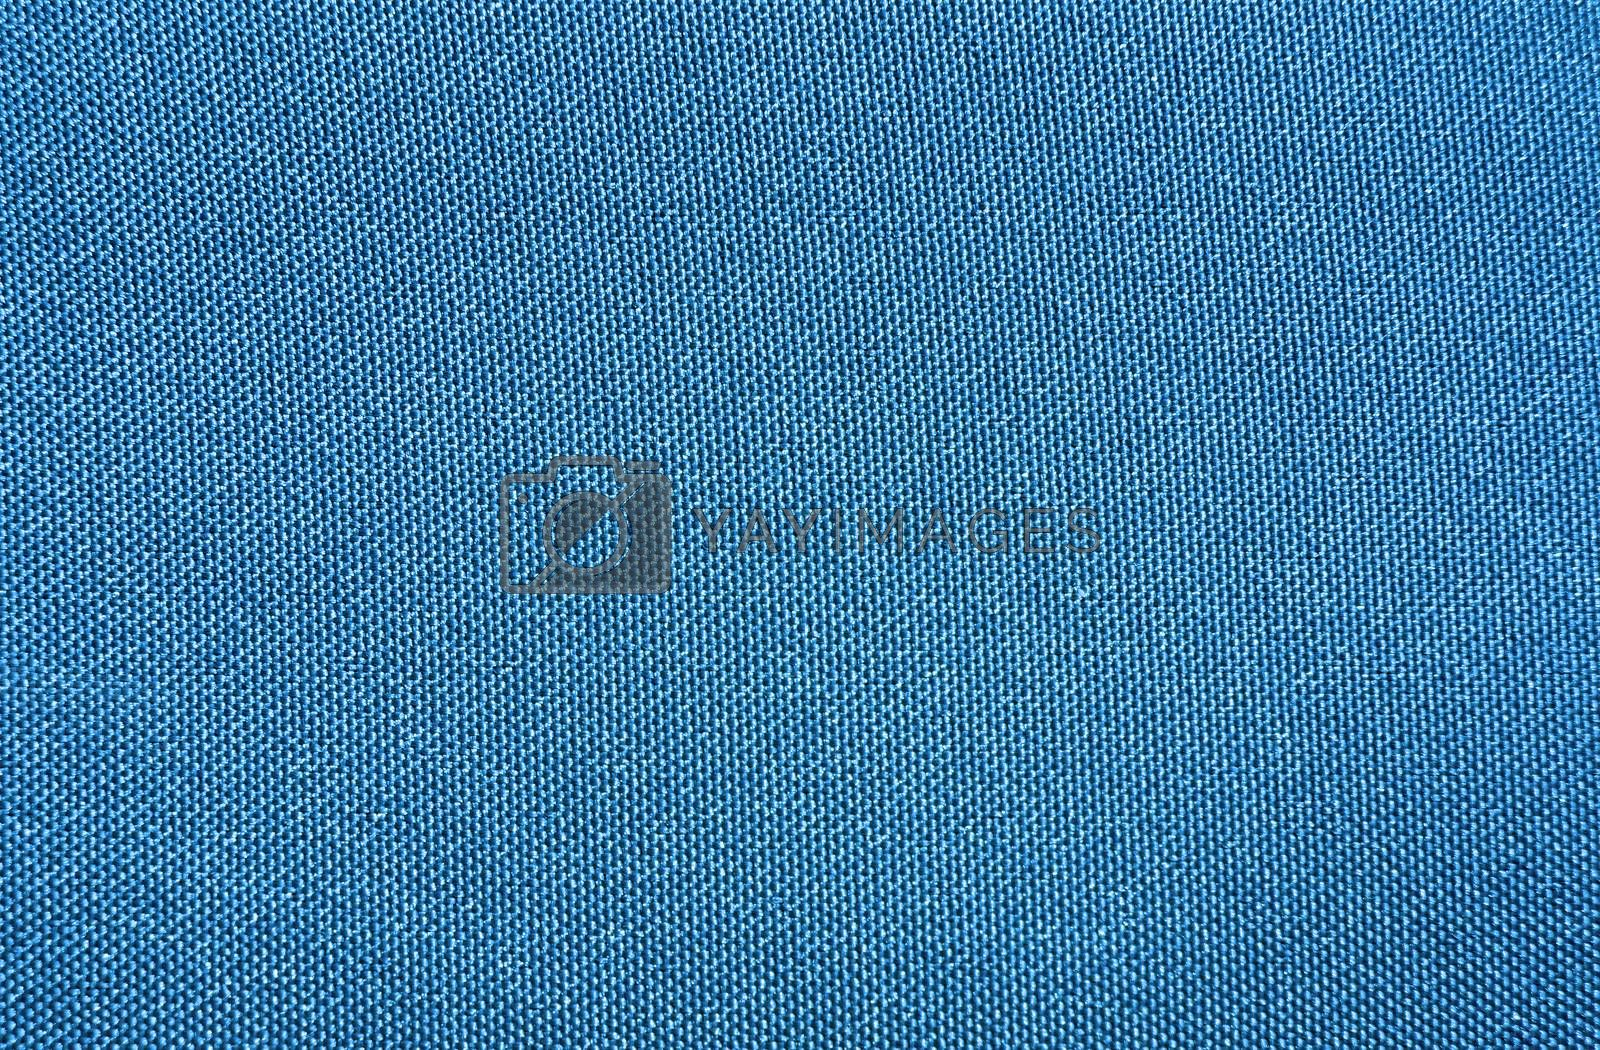 Texture of a blue woven synthetic waterproof fabric by Chiffanna